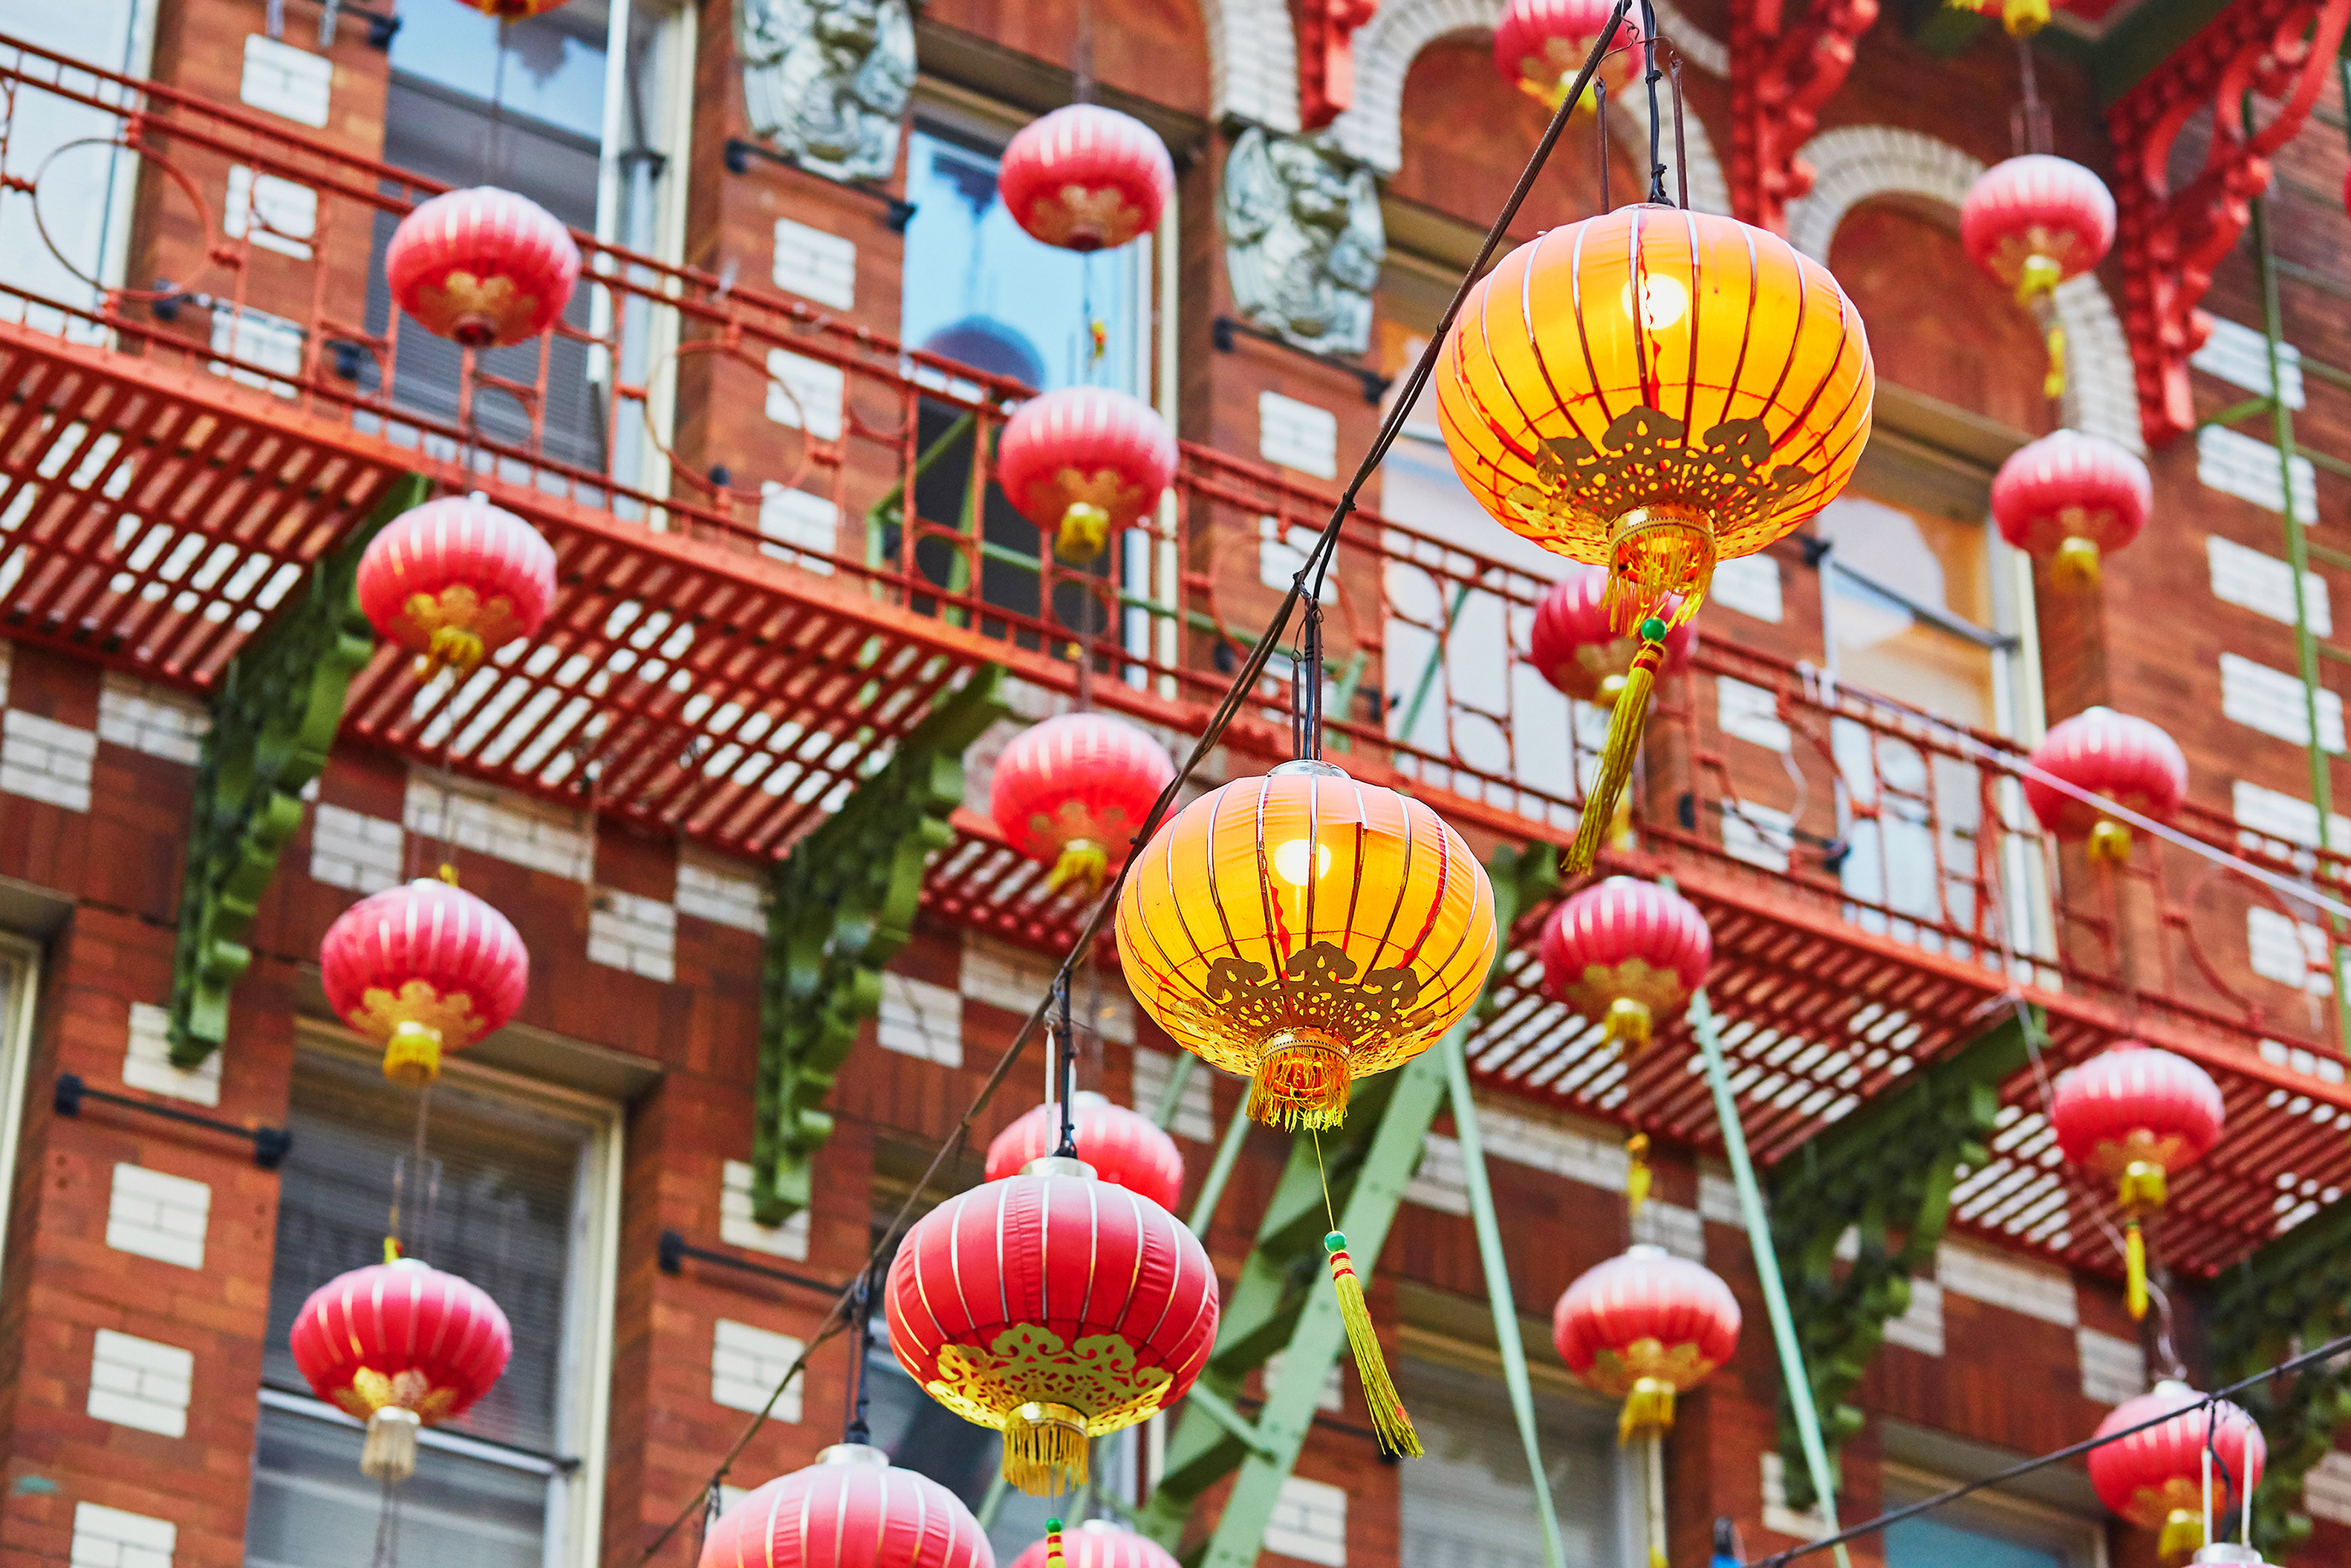 A photo of red lanterns against a building in Chinatown